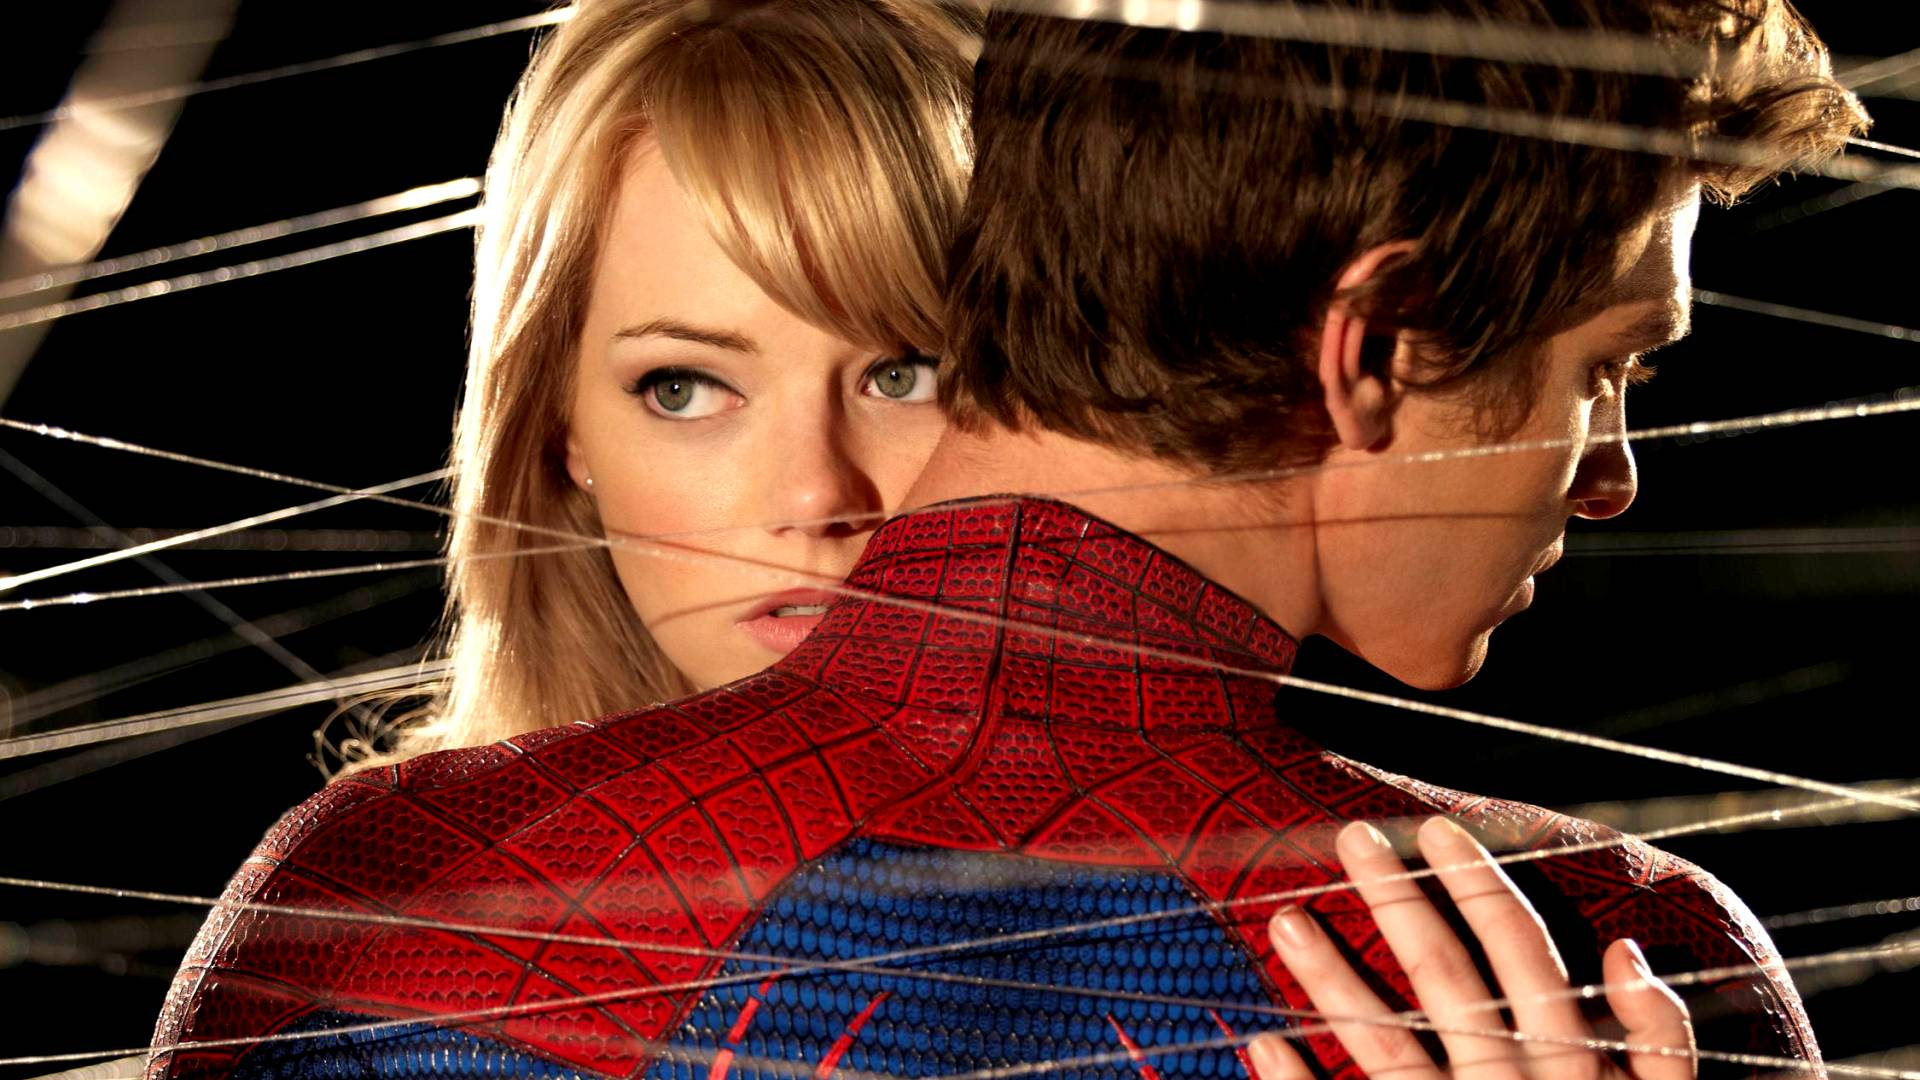 Peter-Gwen-peter-parker-and-gwen-stacy-31598993-1920-1080